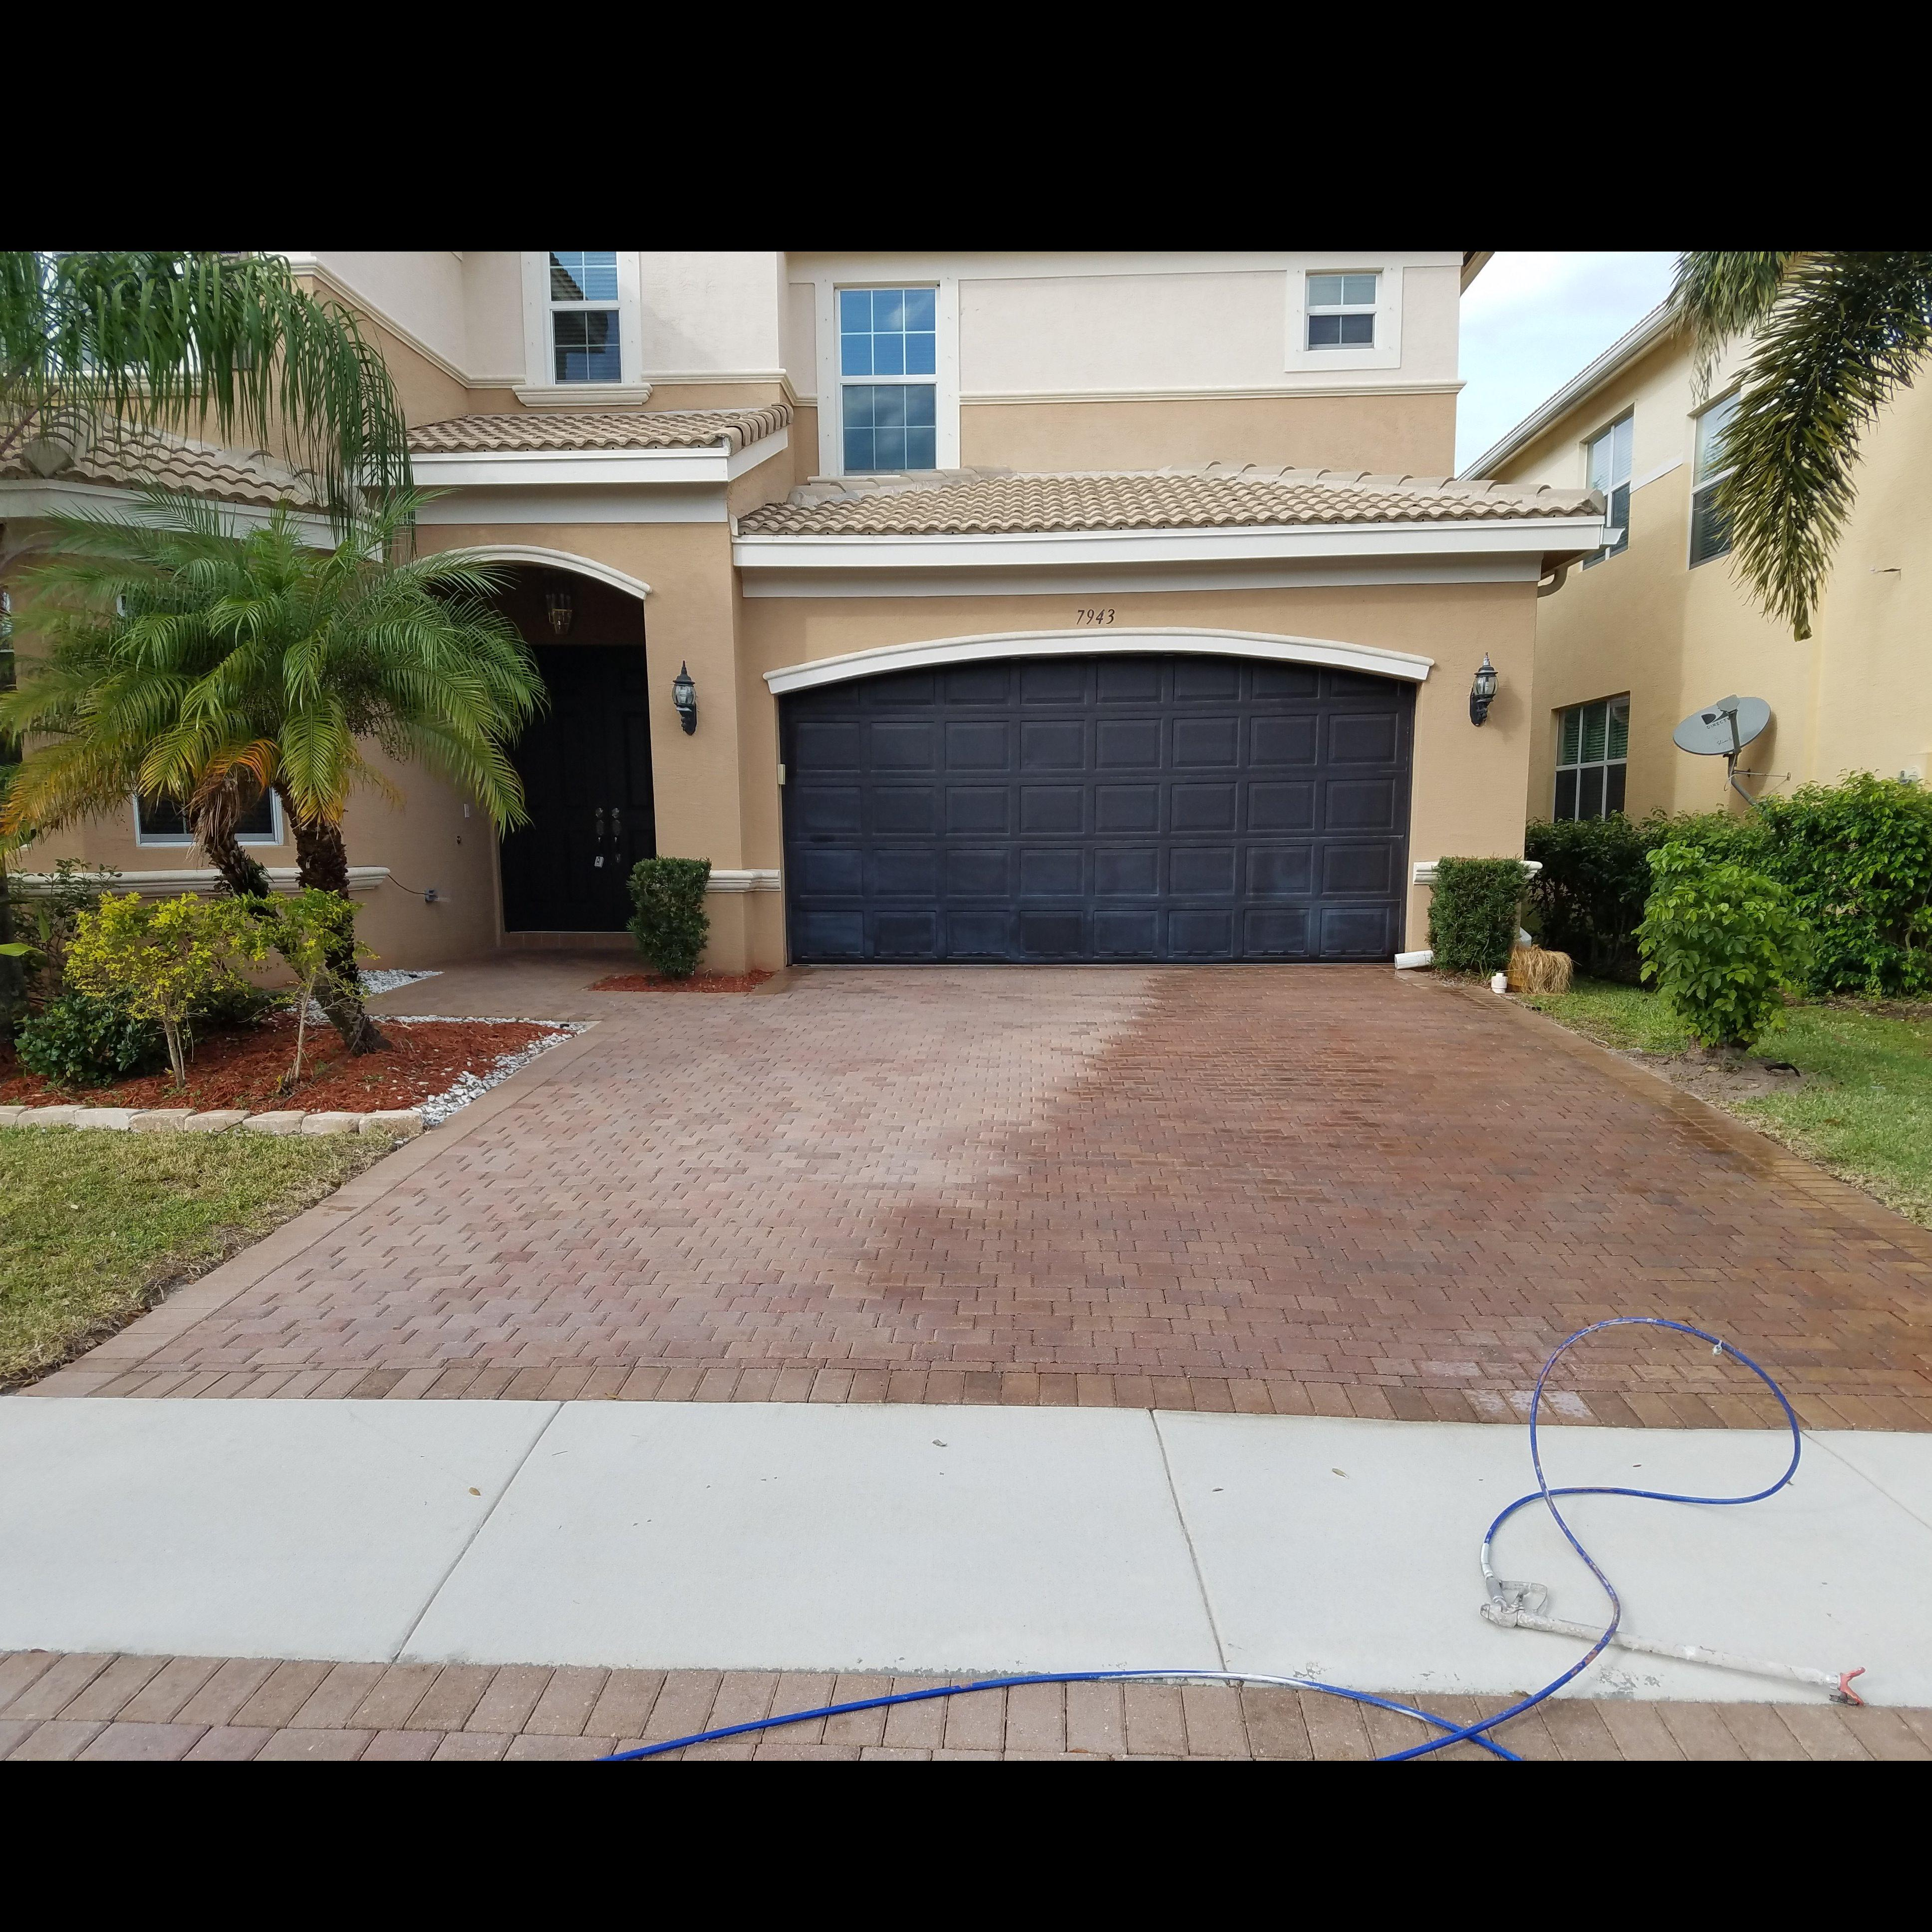 Deans Pressure Cleaning Sealing 5 Photos Cleaning Lake Worth Fl Reviews